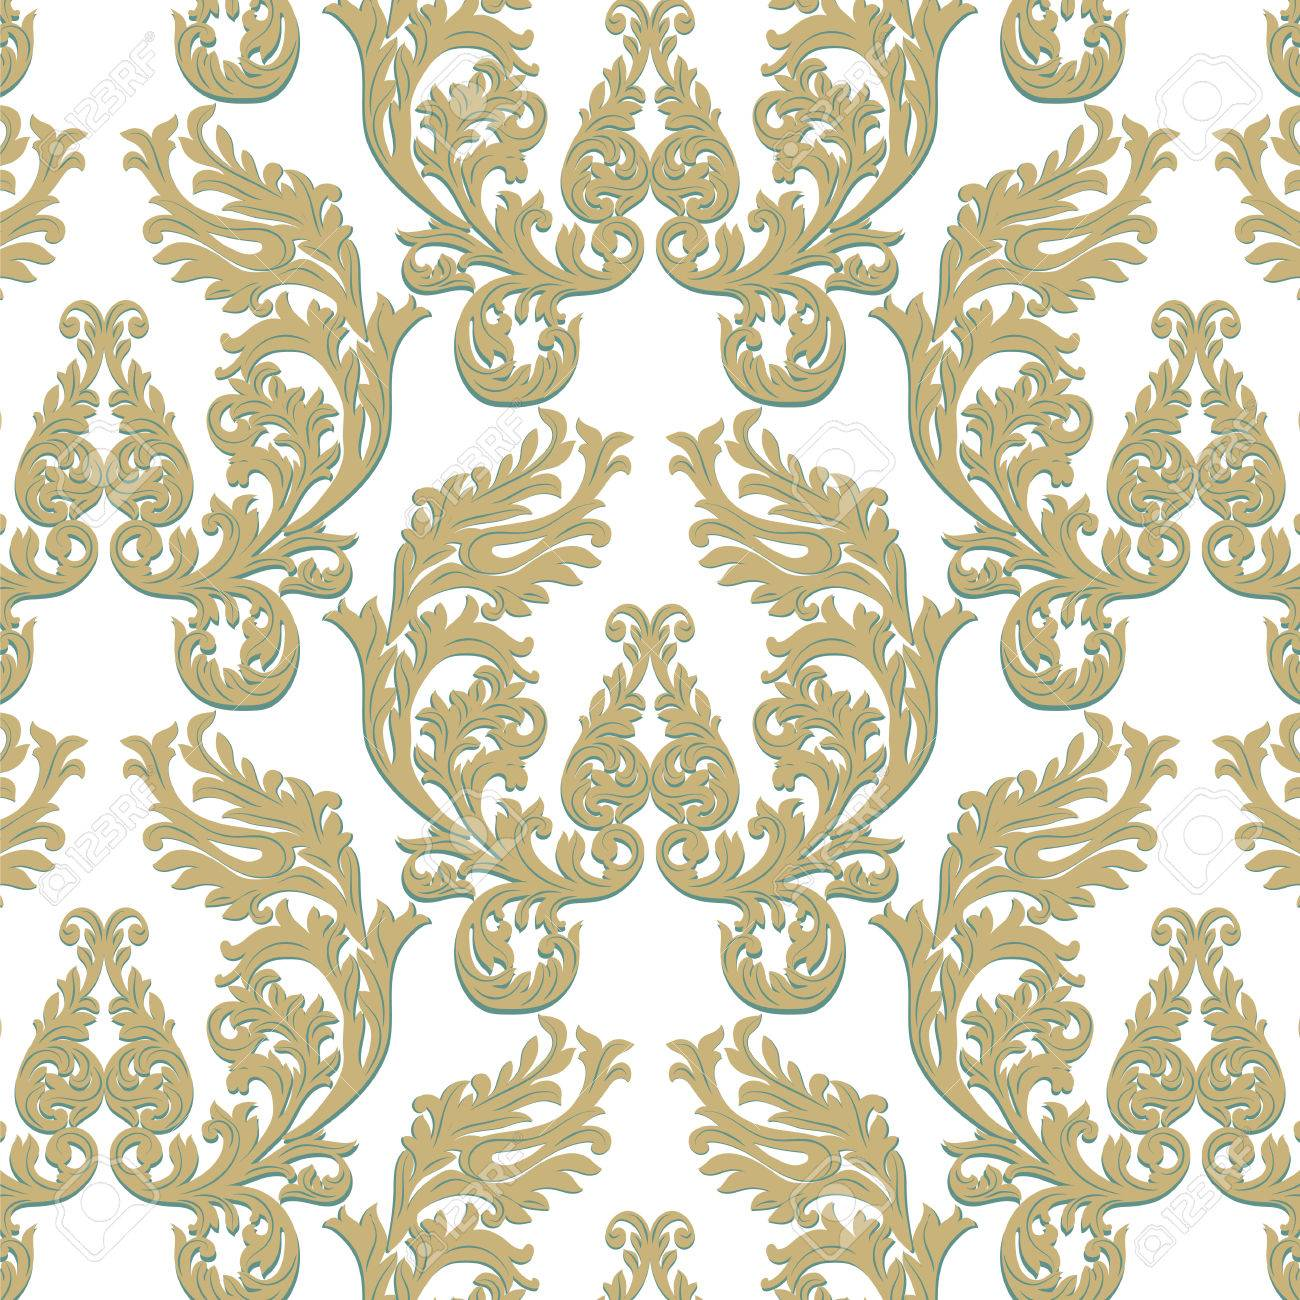 Vintage 12x10 FT Vinyl Photo Backdrops,Medieval Victorian Rococo Baroque Style Damask Tulip Flowers Renaissance Art Background for Selfie Birthday Party Pictures Photo Booth Shoot